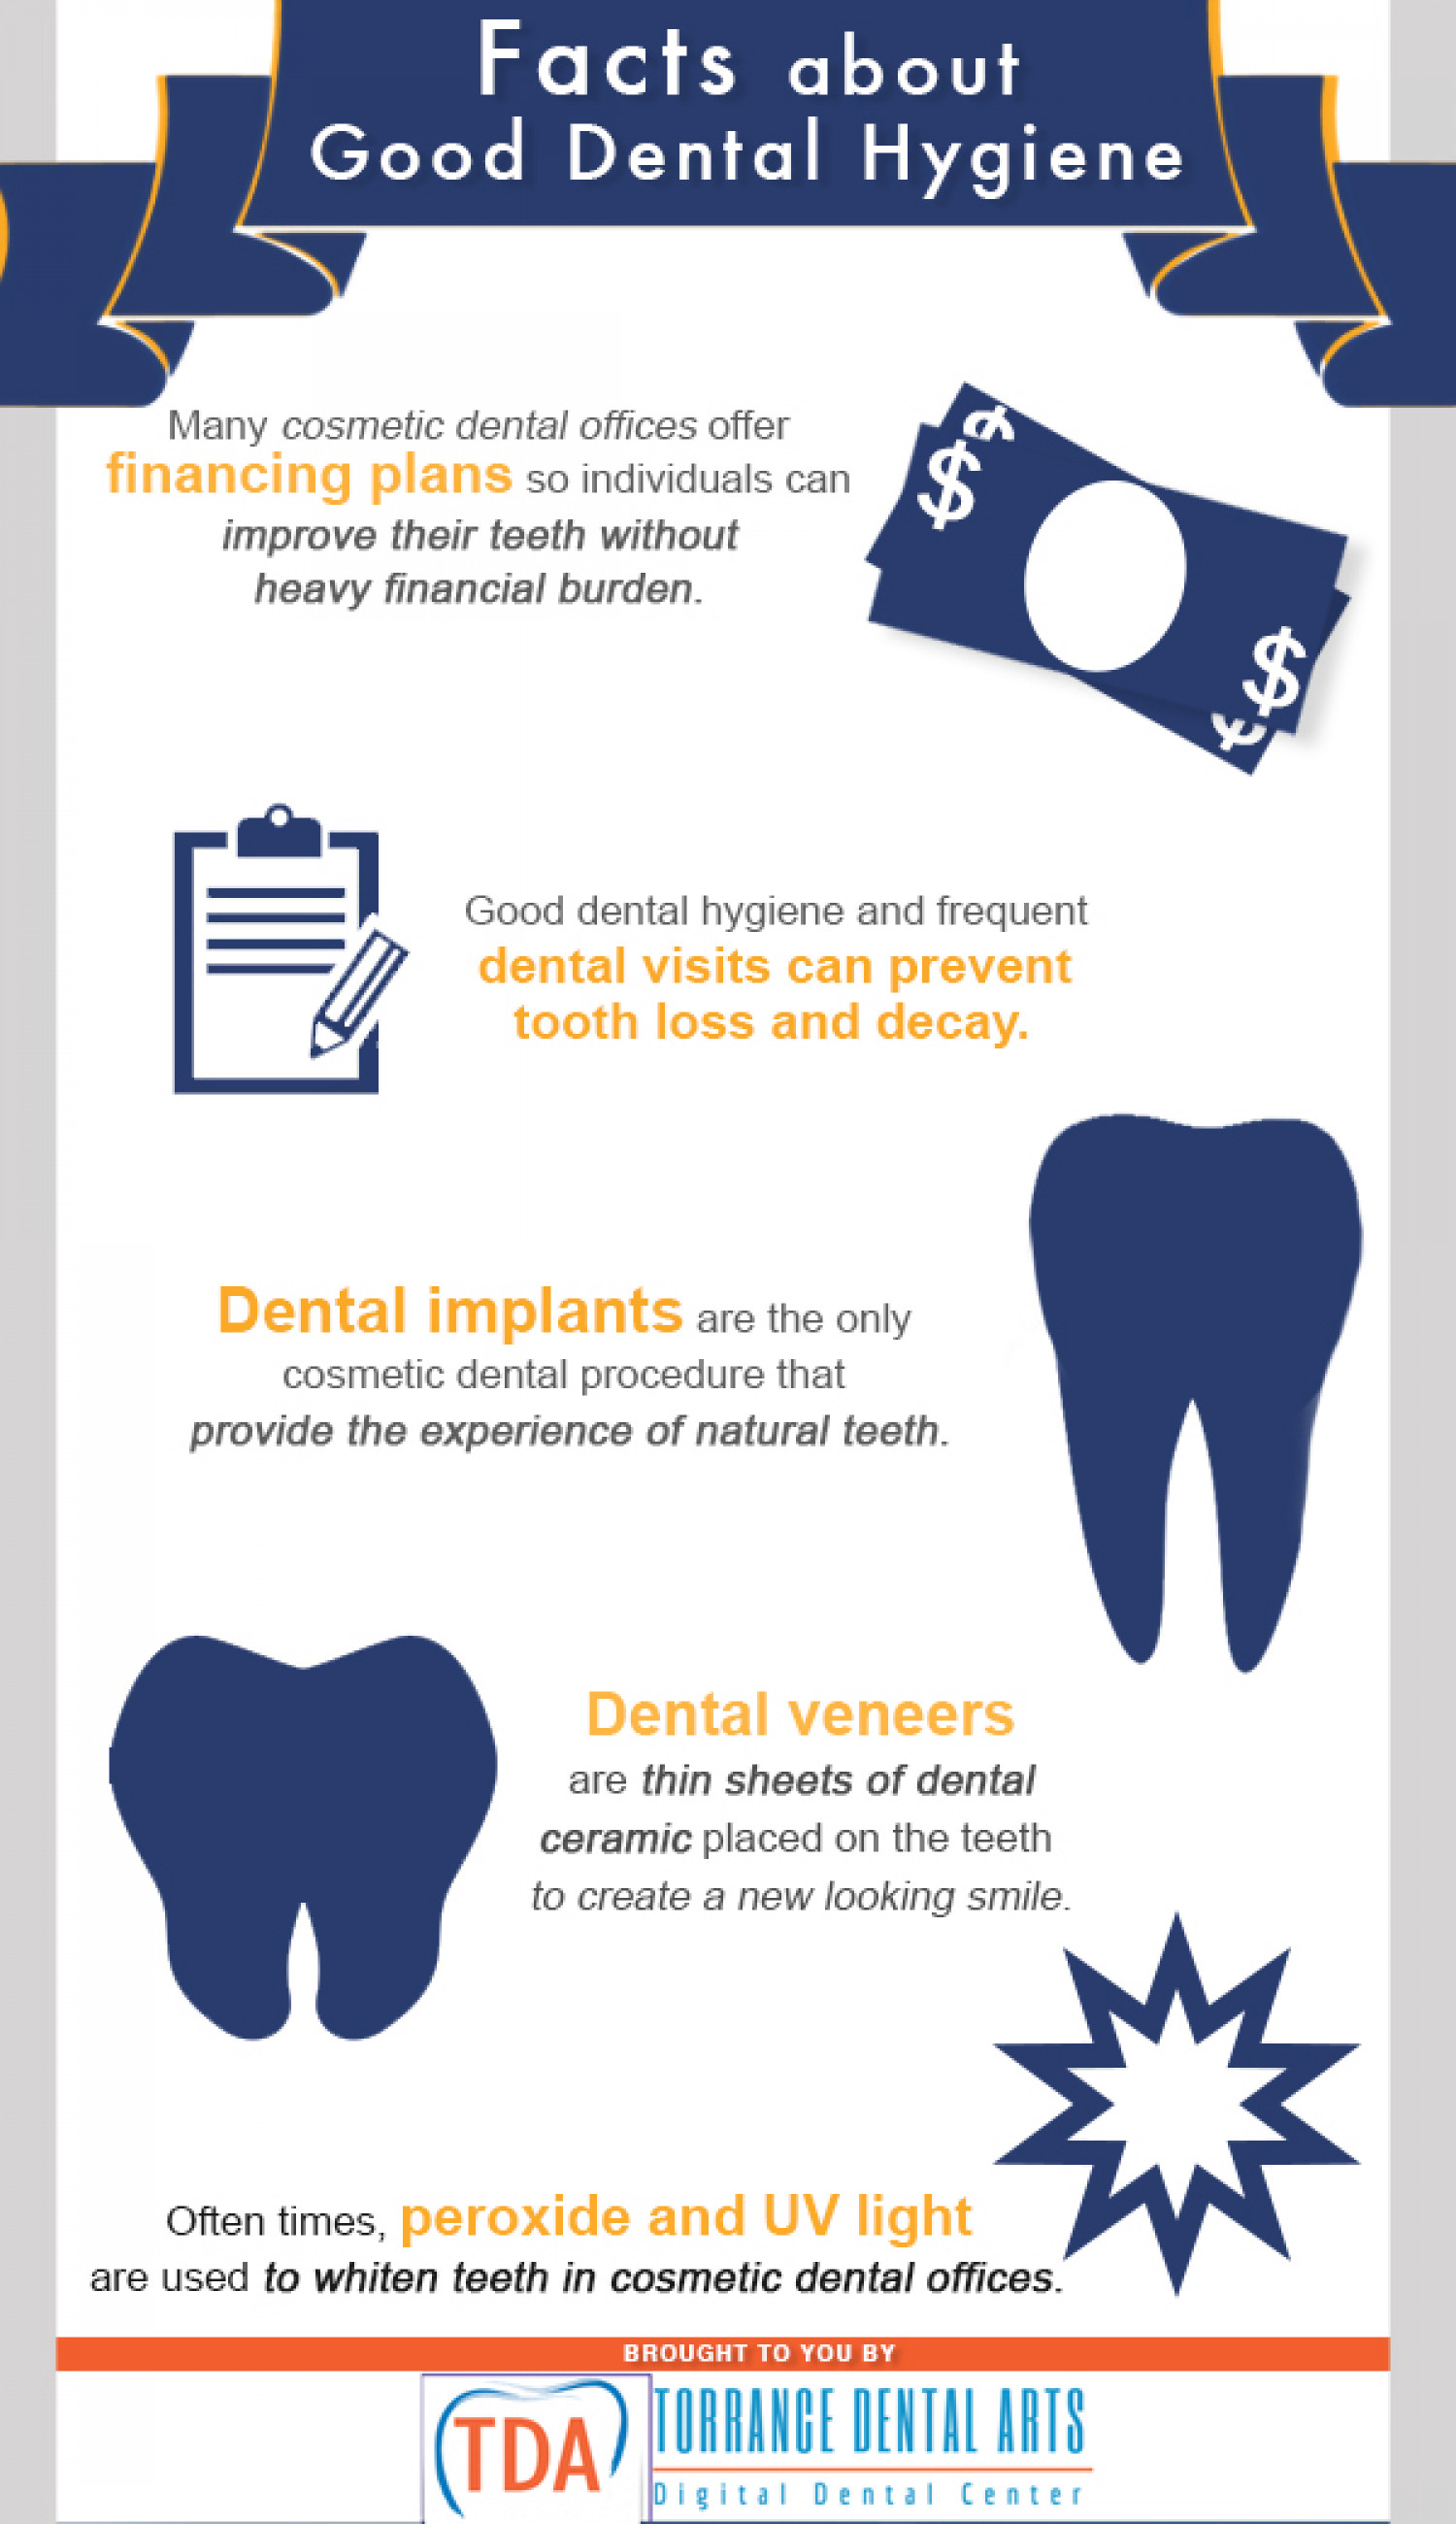 Facts About Good Dental Hygiene Infographic